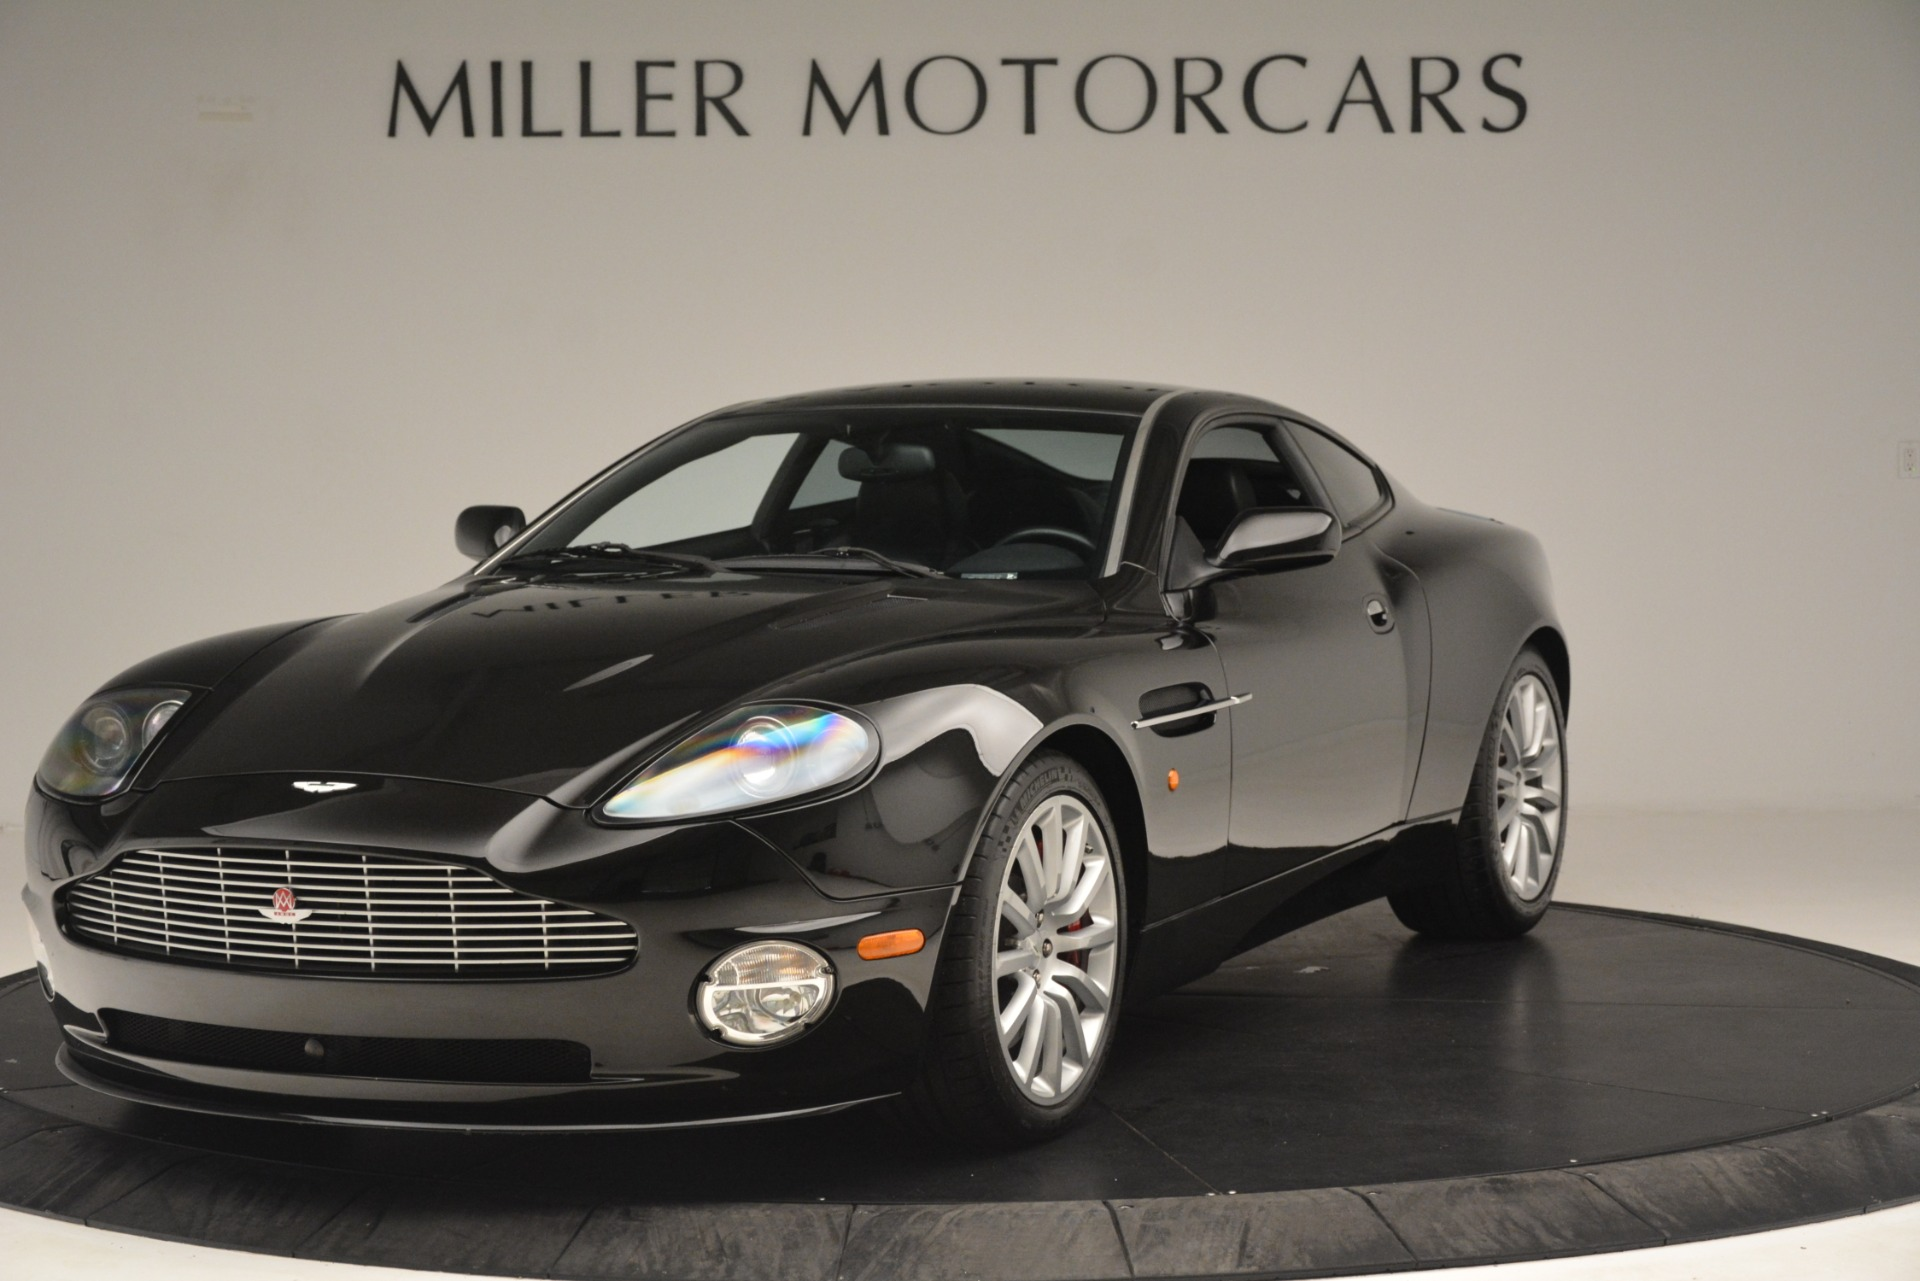 Used 2004 Aston Martin V12 Vanquish for sale Sold at Alfa Romeo of Westport in Westport CT 06880 1